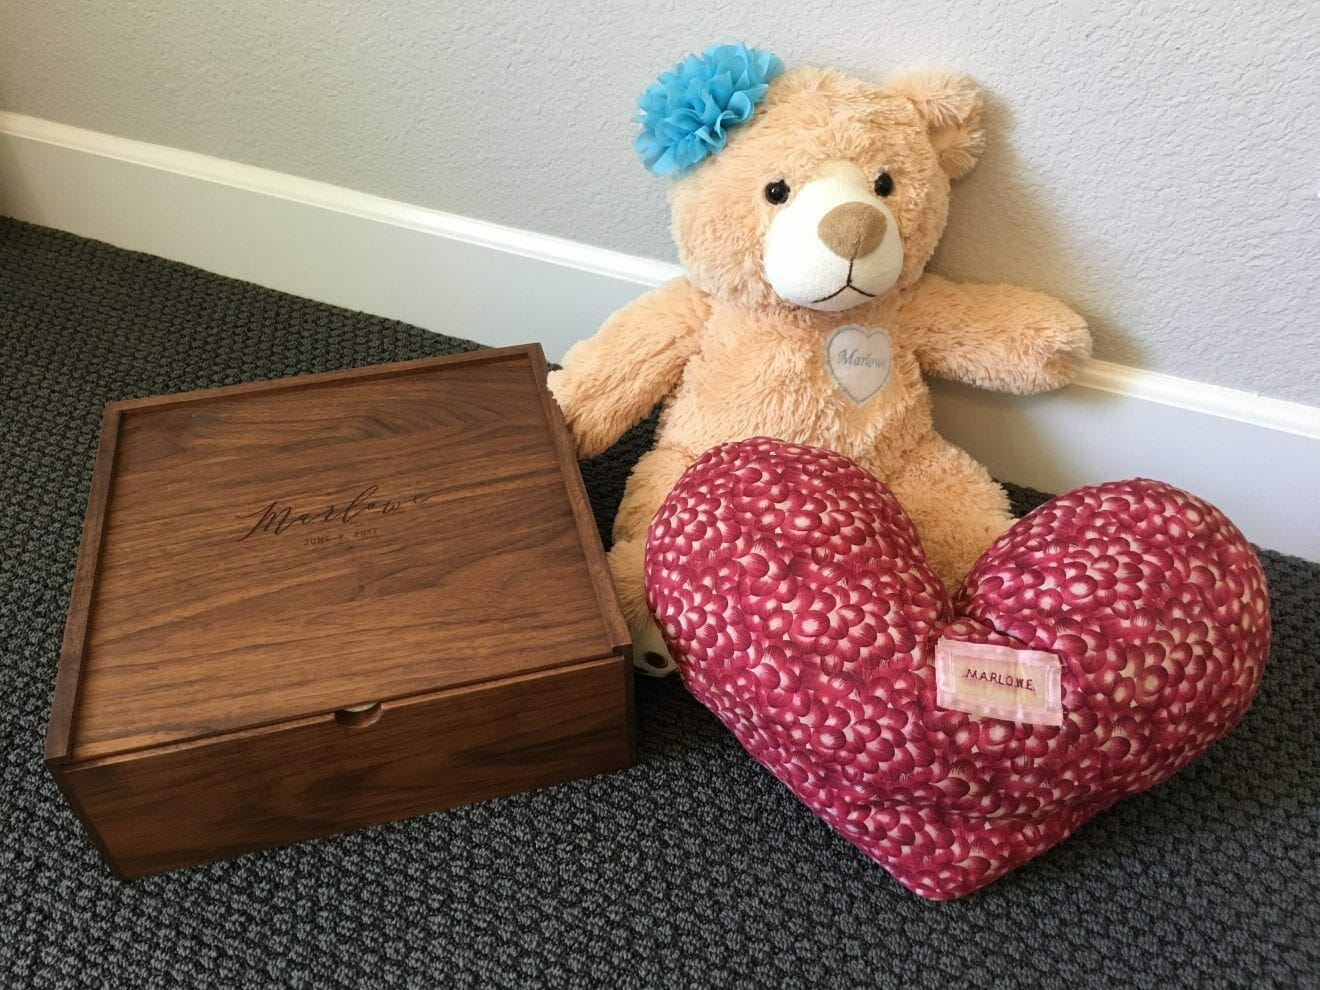 Card box and stats pillow in honor of Marlowe, contributed by mother Bethany